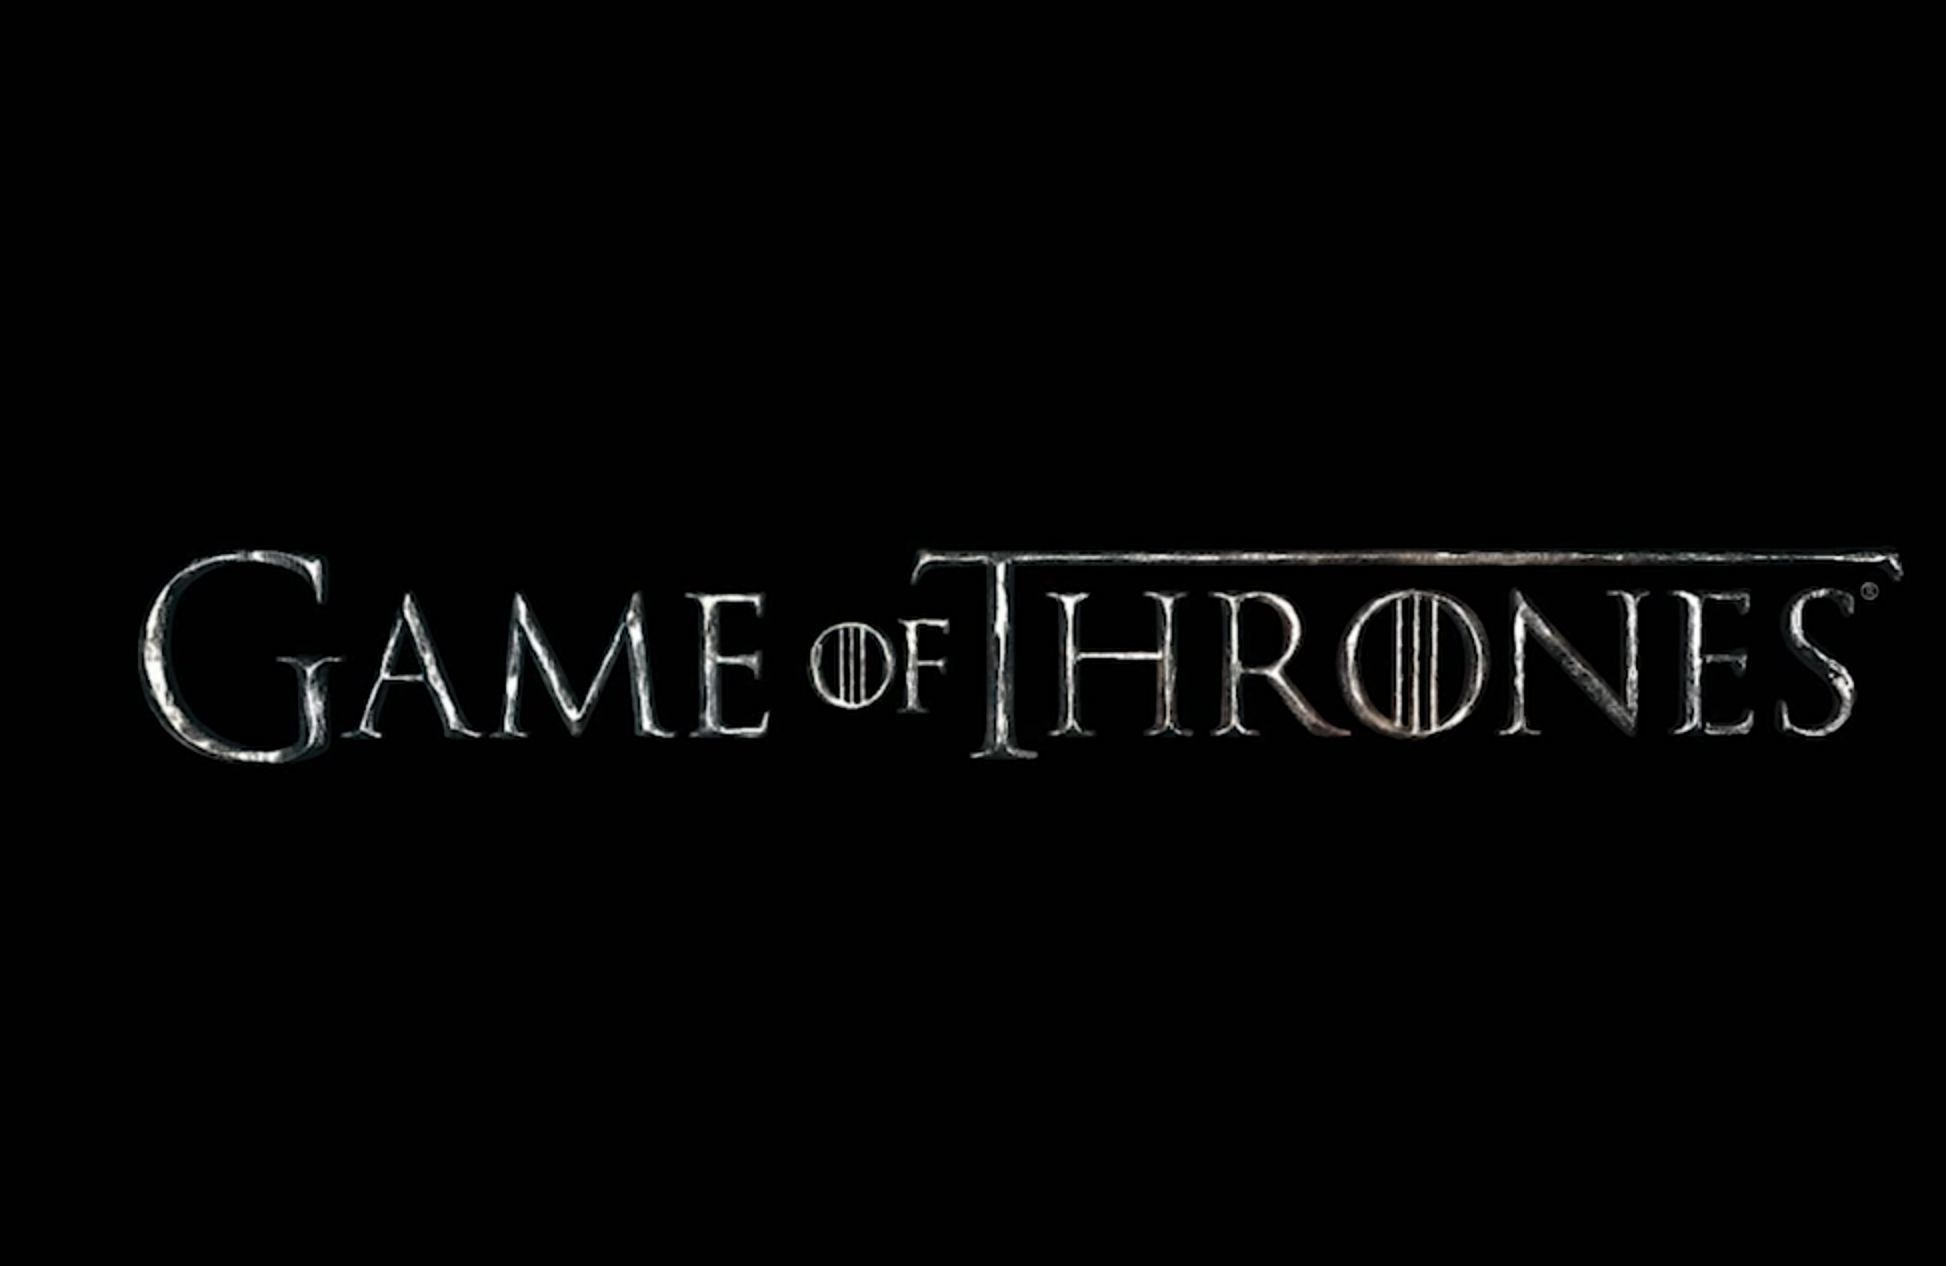 Runtimes for Game of Thrones season 8 episodes revealed.